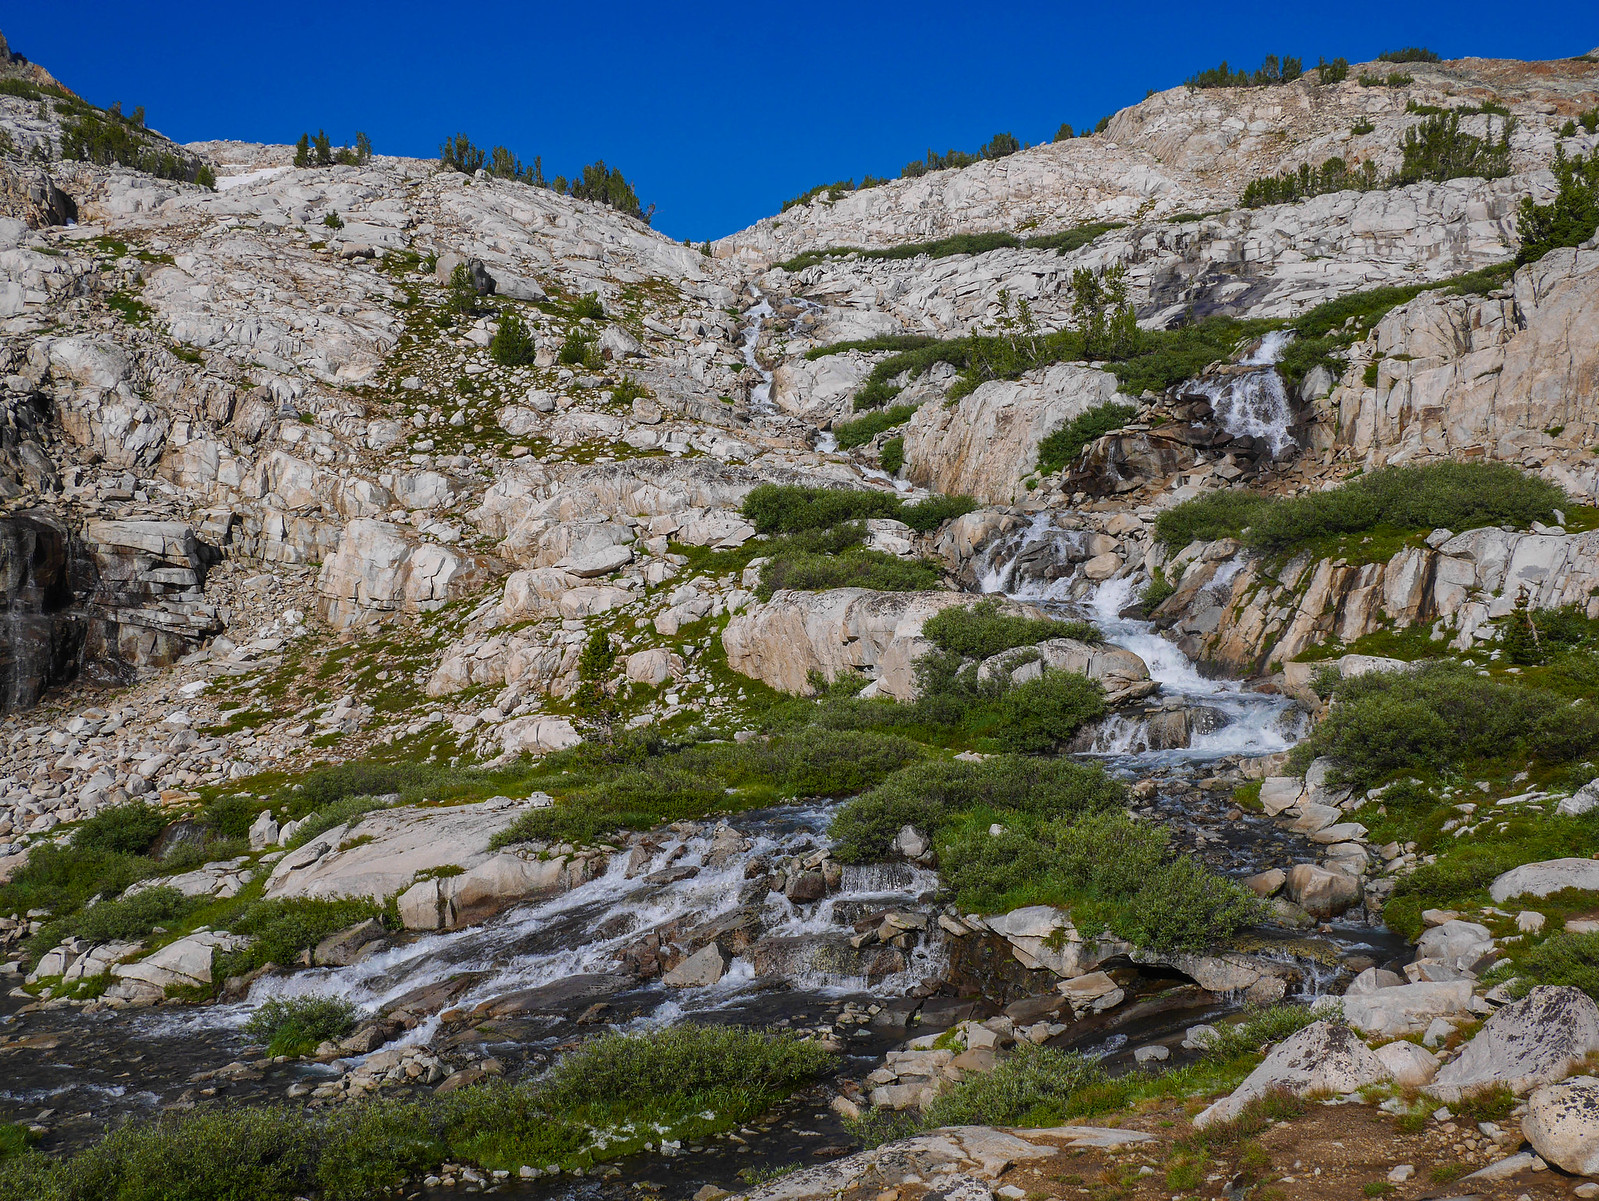 More tributaries join the Middle Fork